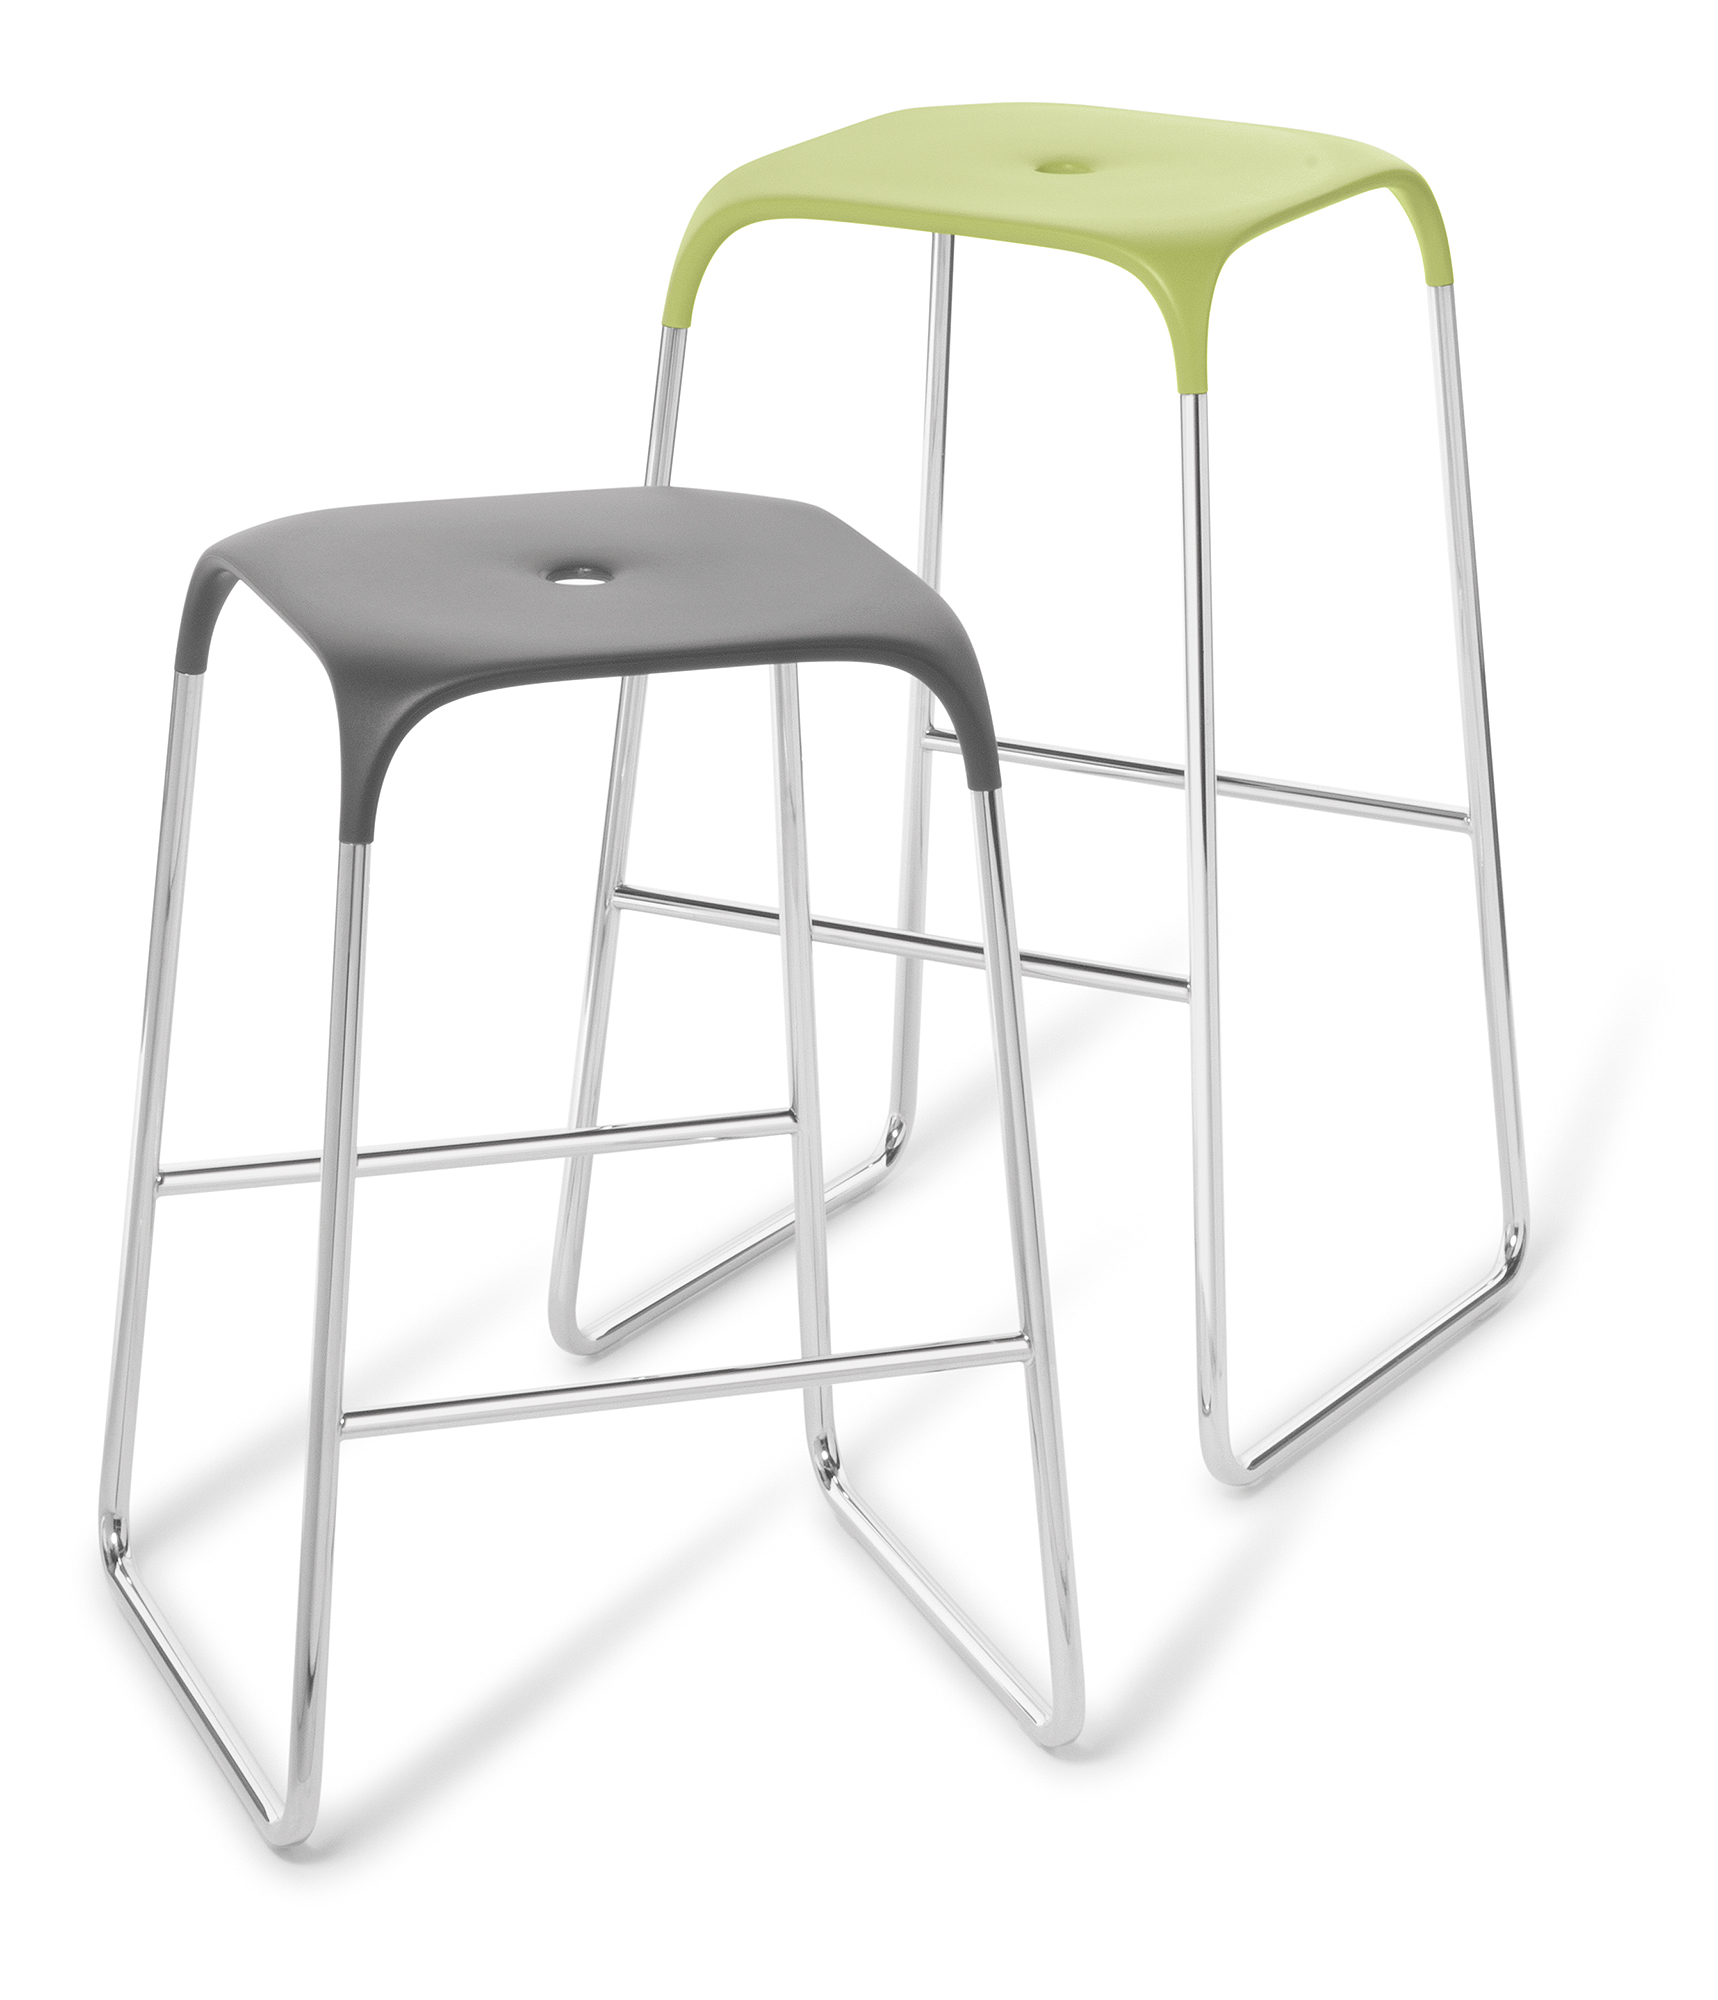 Home/Seating Solution/Chairs And Stools/Bobo Stool. ; 